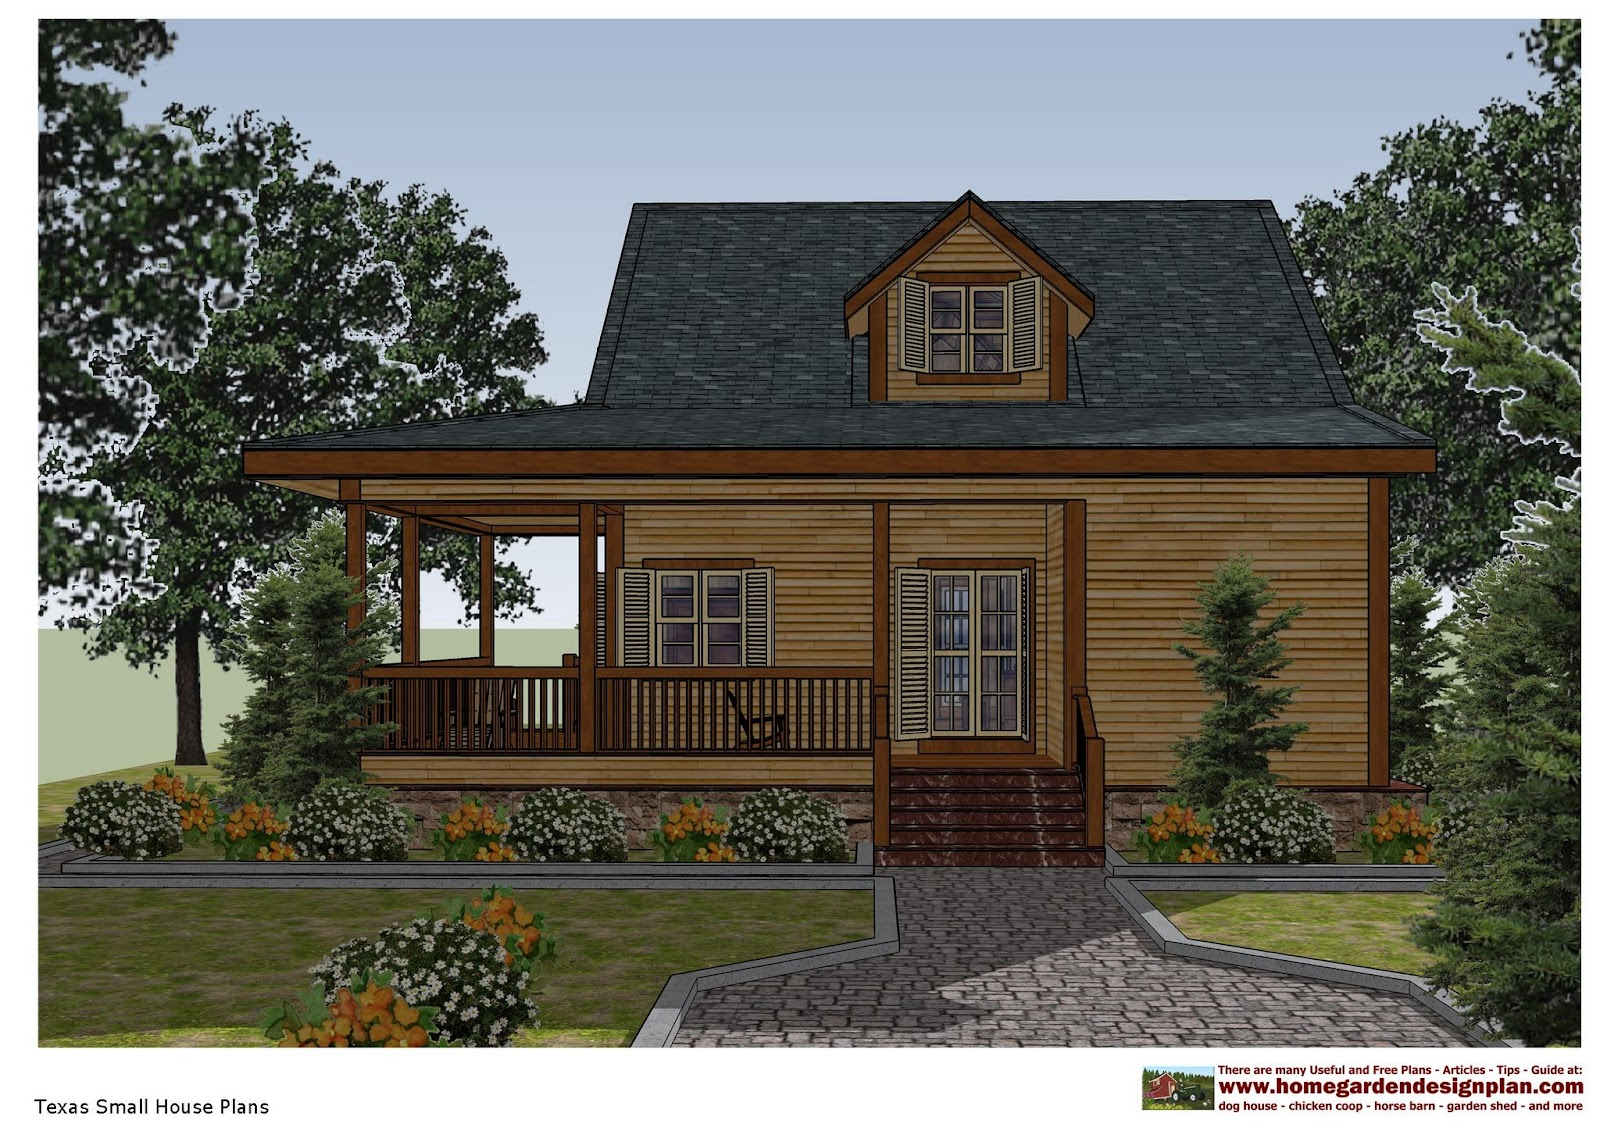 Home garden plans sh100 small house plans small house for South texas house plans